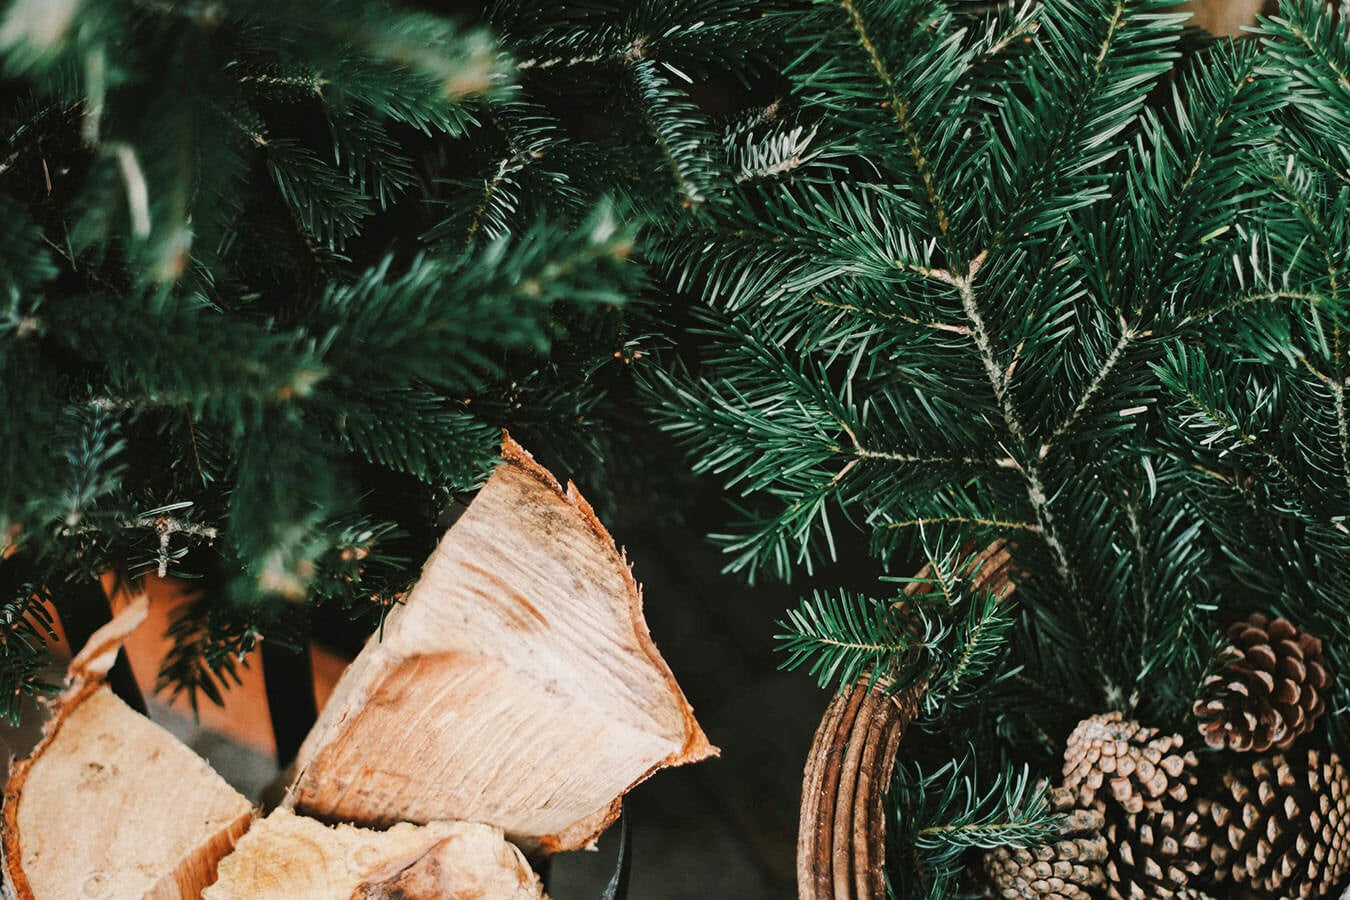 Christmas Tree, pine cones and wood for a fire